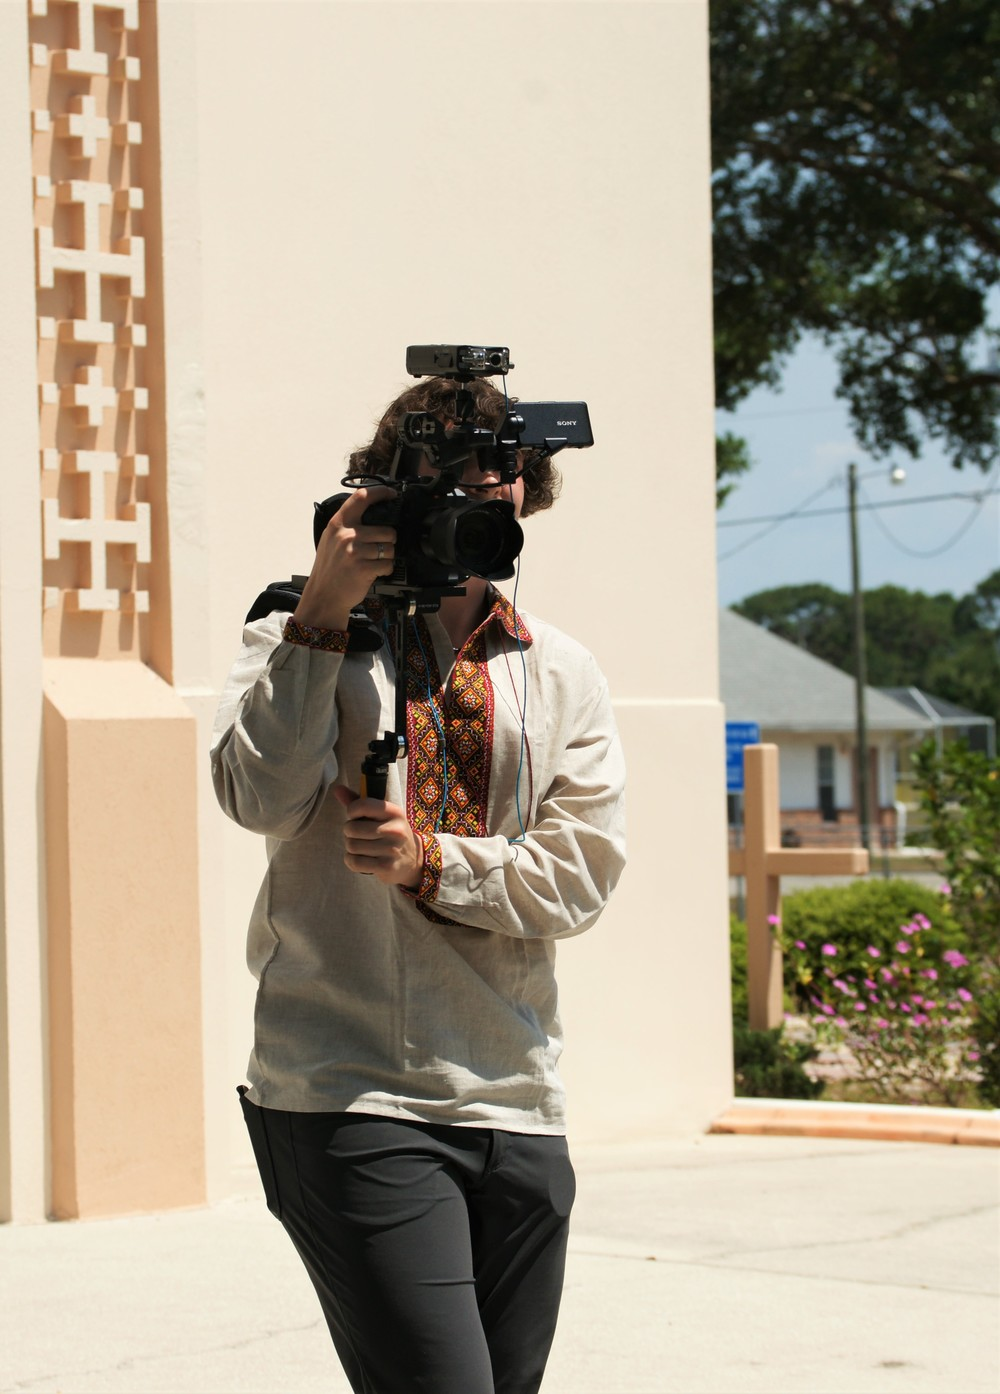 Matej  Silecky filming in North Port, Florida, May 2016